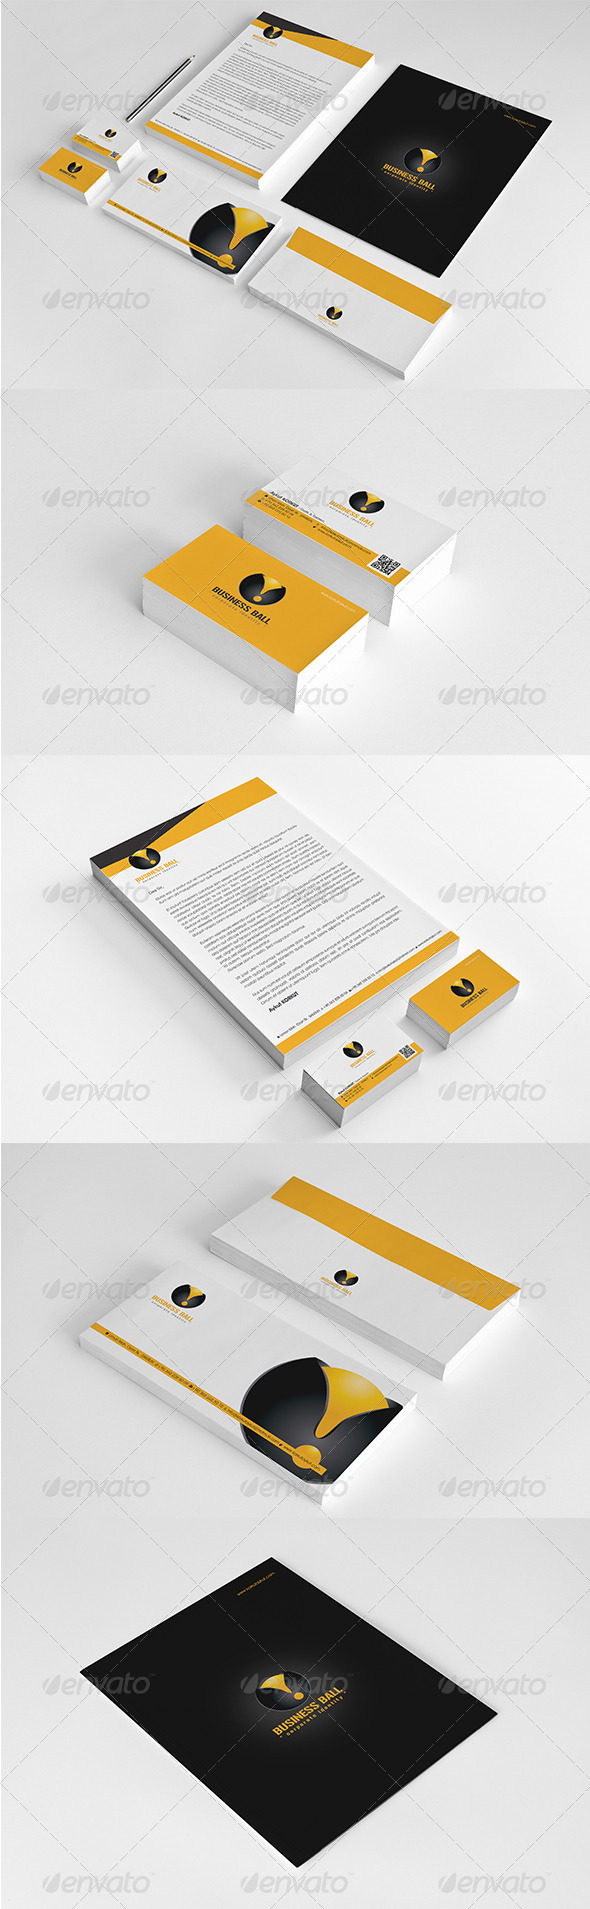 GraphicRiver Business Ball Corporate Identity Package 6148779